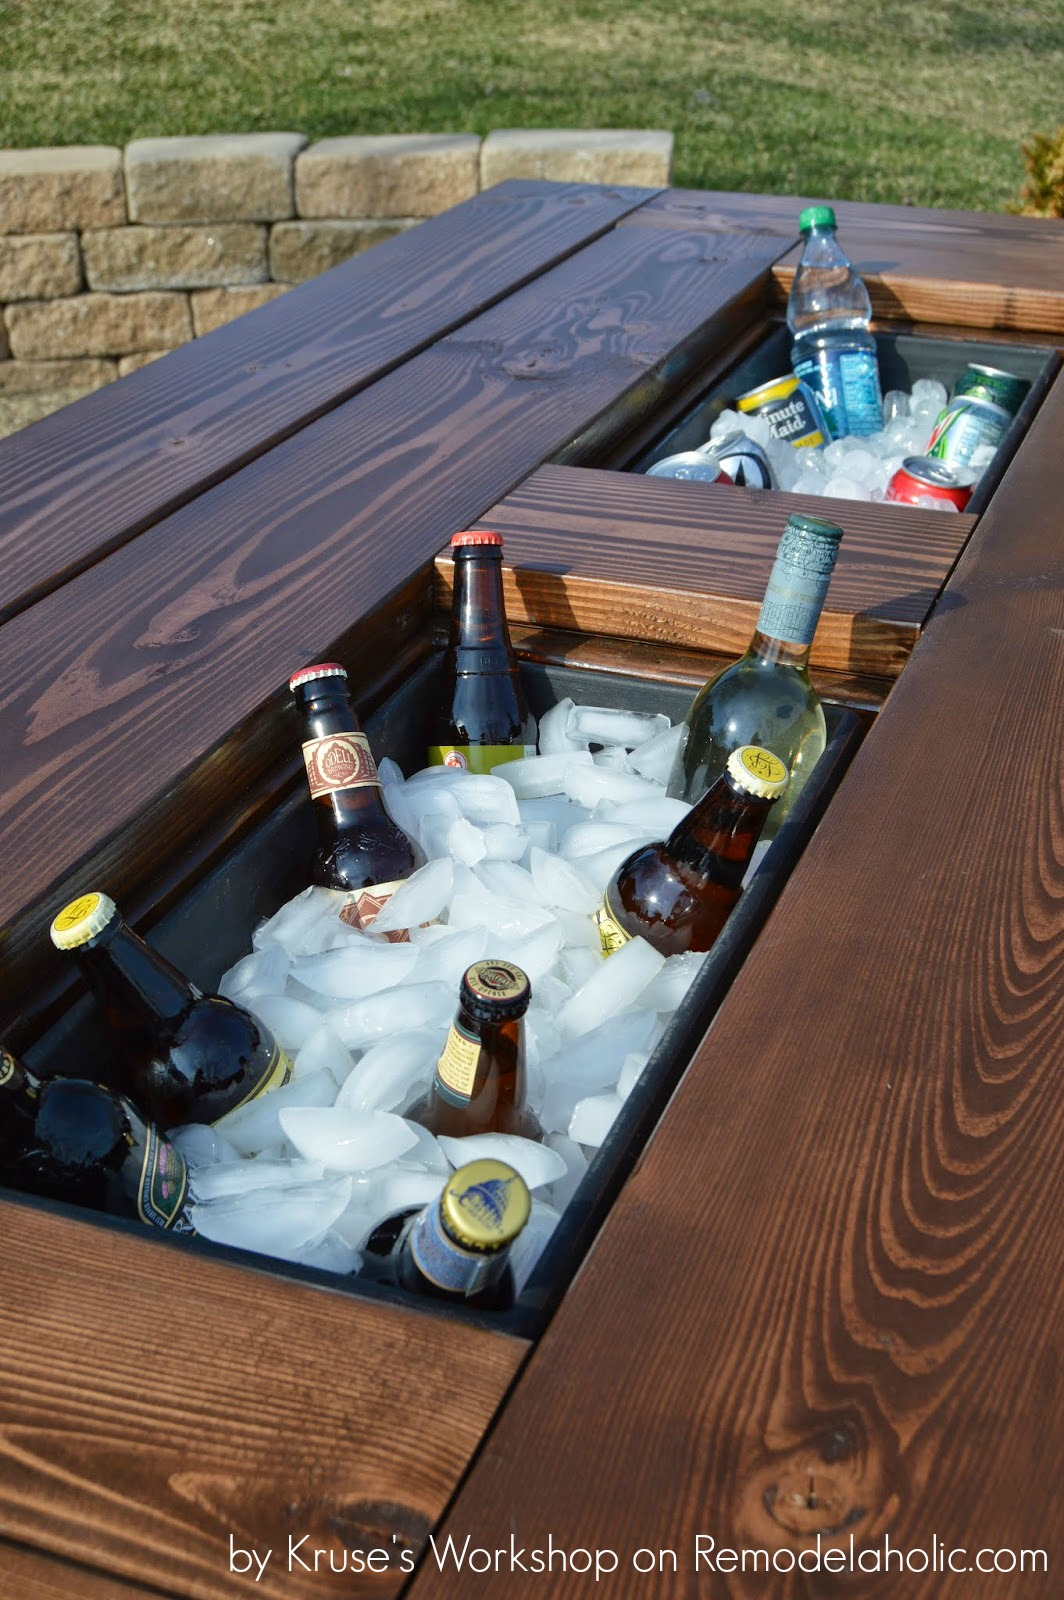 Hot Tub Table Ideas - Table Design Ideas Raised Ranch Backyard Spa Ideas on barbecue backyard ideas, duplex backyard ideas, farmhouse backyard ideas, townhouse backyard ideas, cabin backyard ideas, forest backyard ideas, english backyard ideas, barn backyard ideas, oriental backyard ideas, industrial backyard ideas, traditional backyard ideas, cowboy backyard ideas, vacation backyard ideas, waterfront backyard ideas, craftsman backyard ideas, cape cod backyard ideas, french backyard ideas, mission backyard ideas, custom backyard ideas,